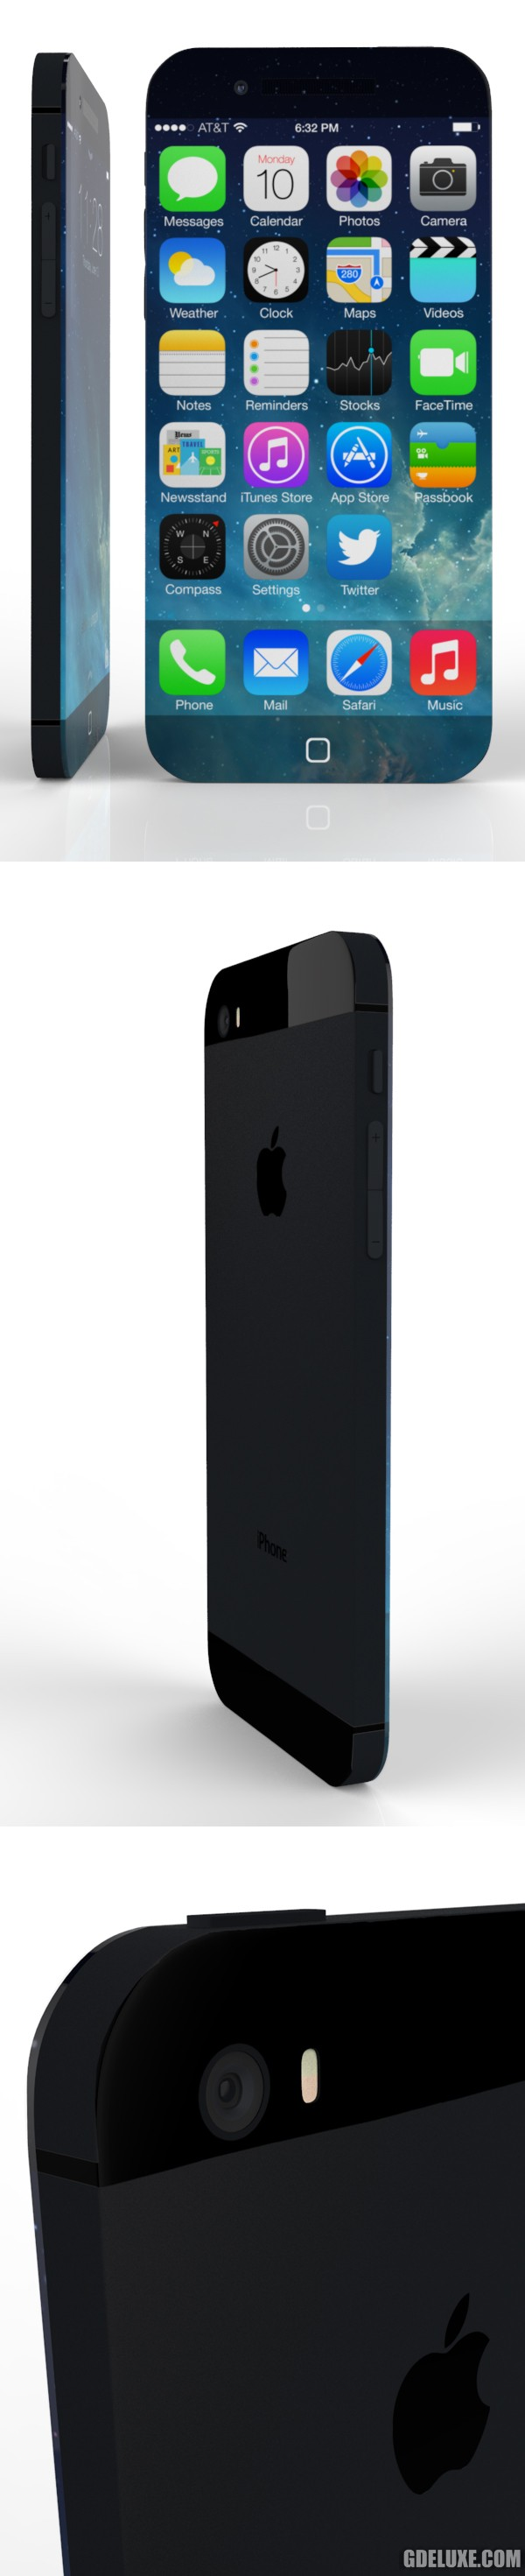 iPhone-6-Space-Grey.png